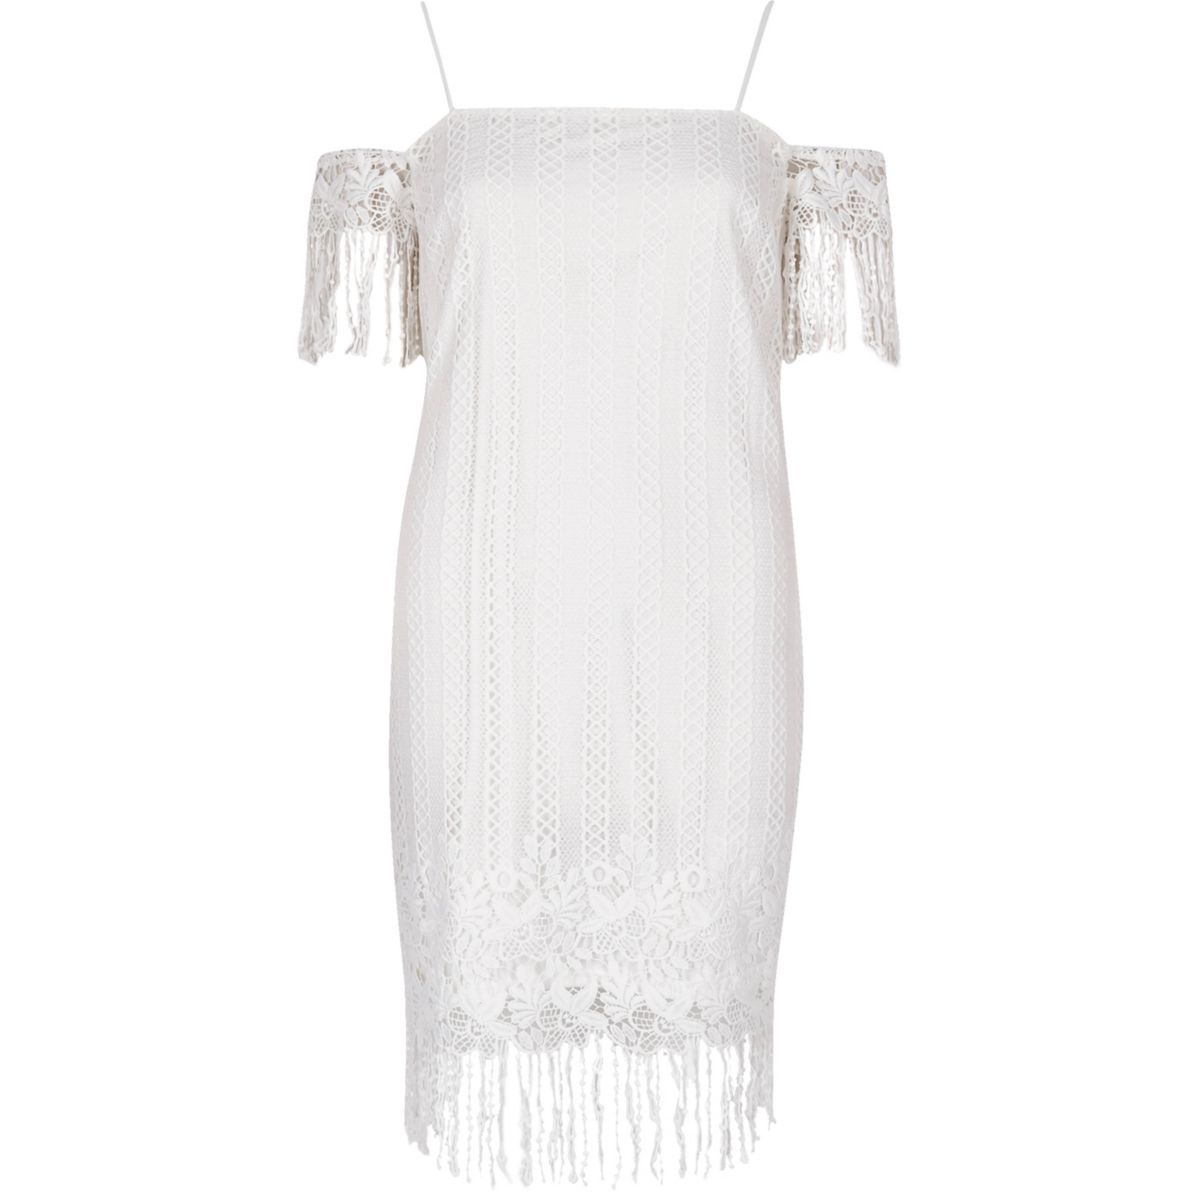 White lace cold shoulder slip dress